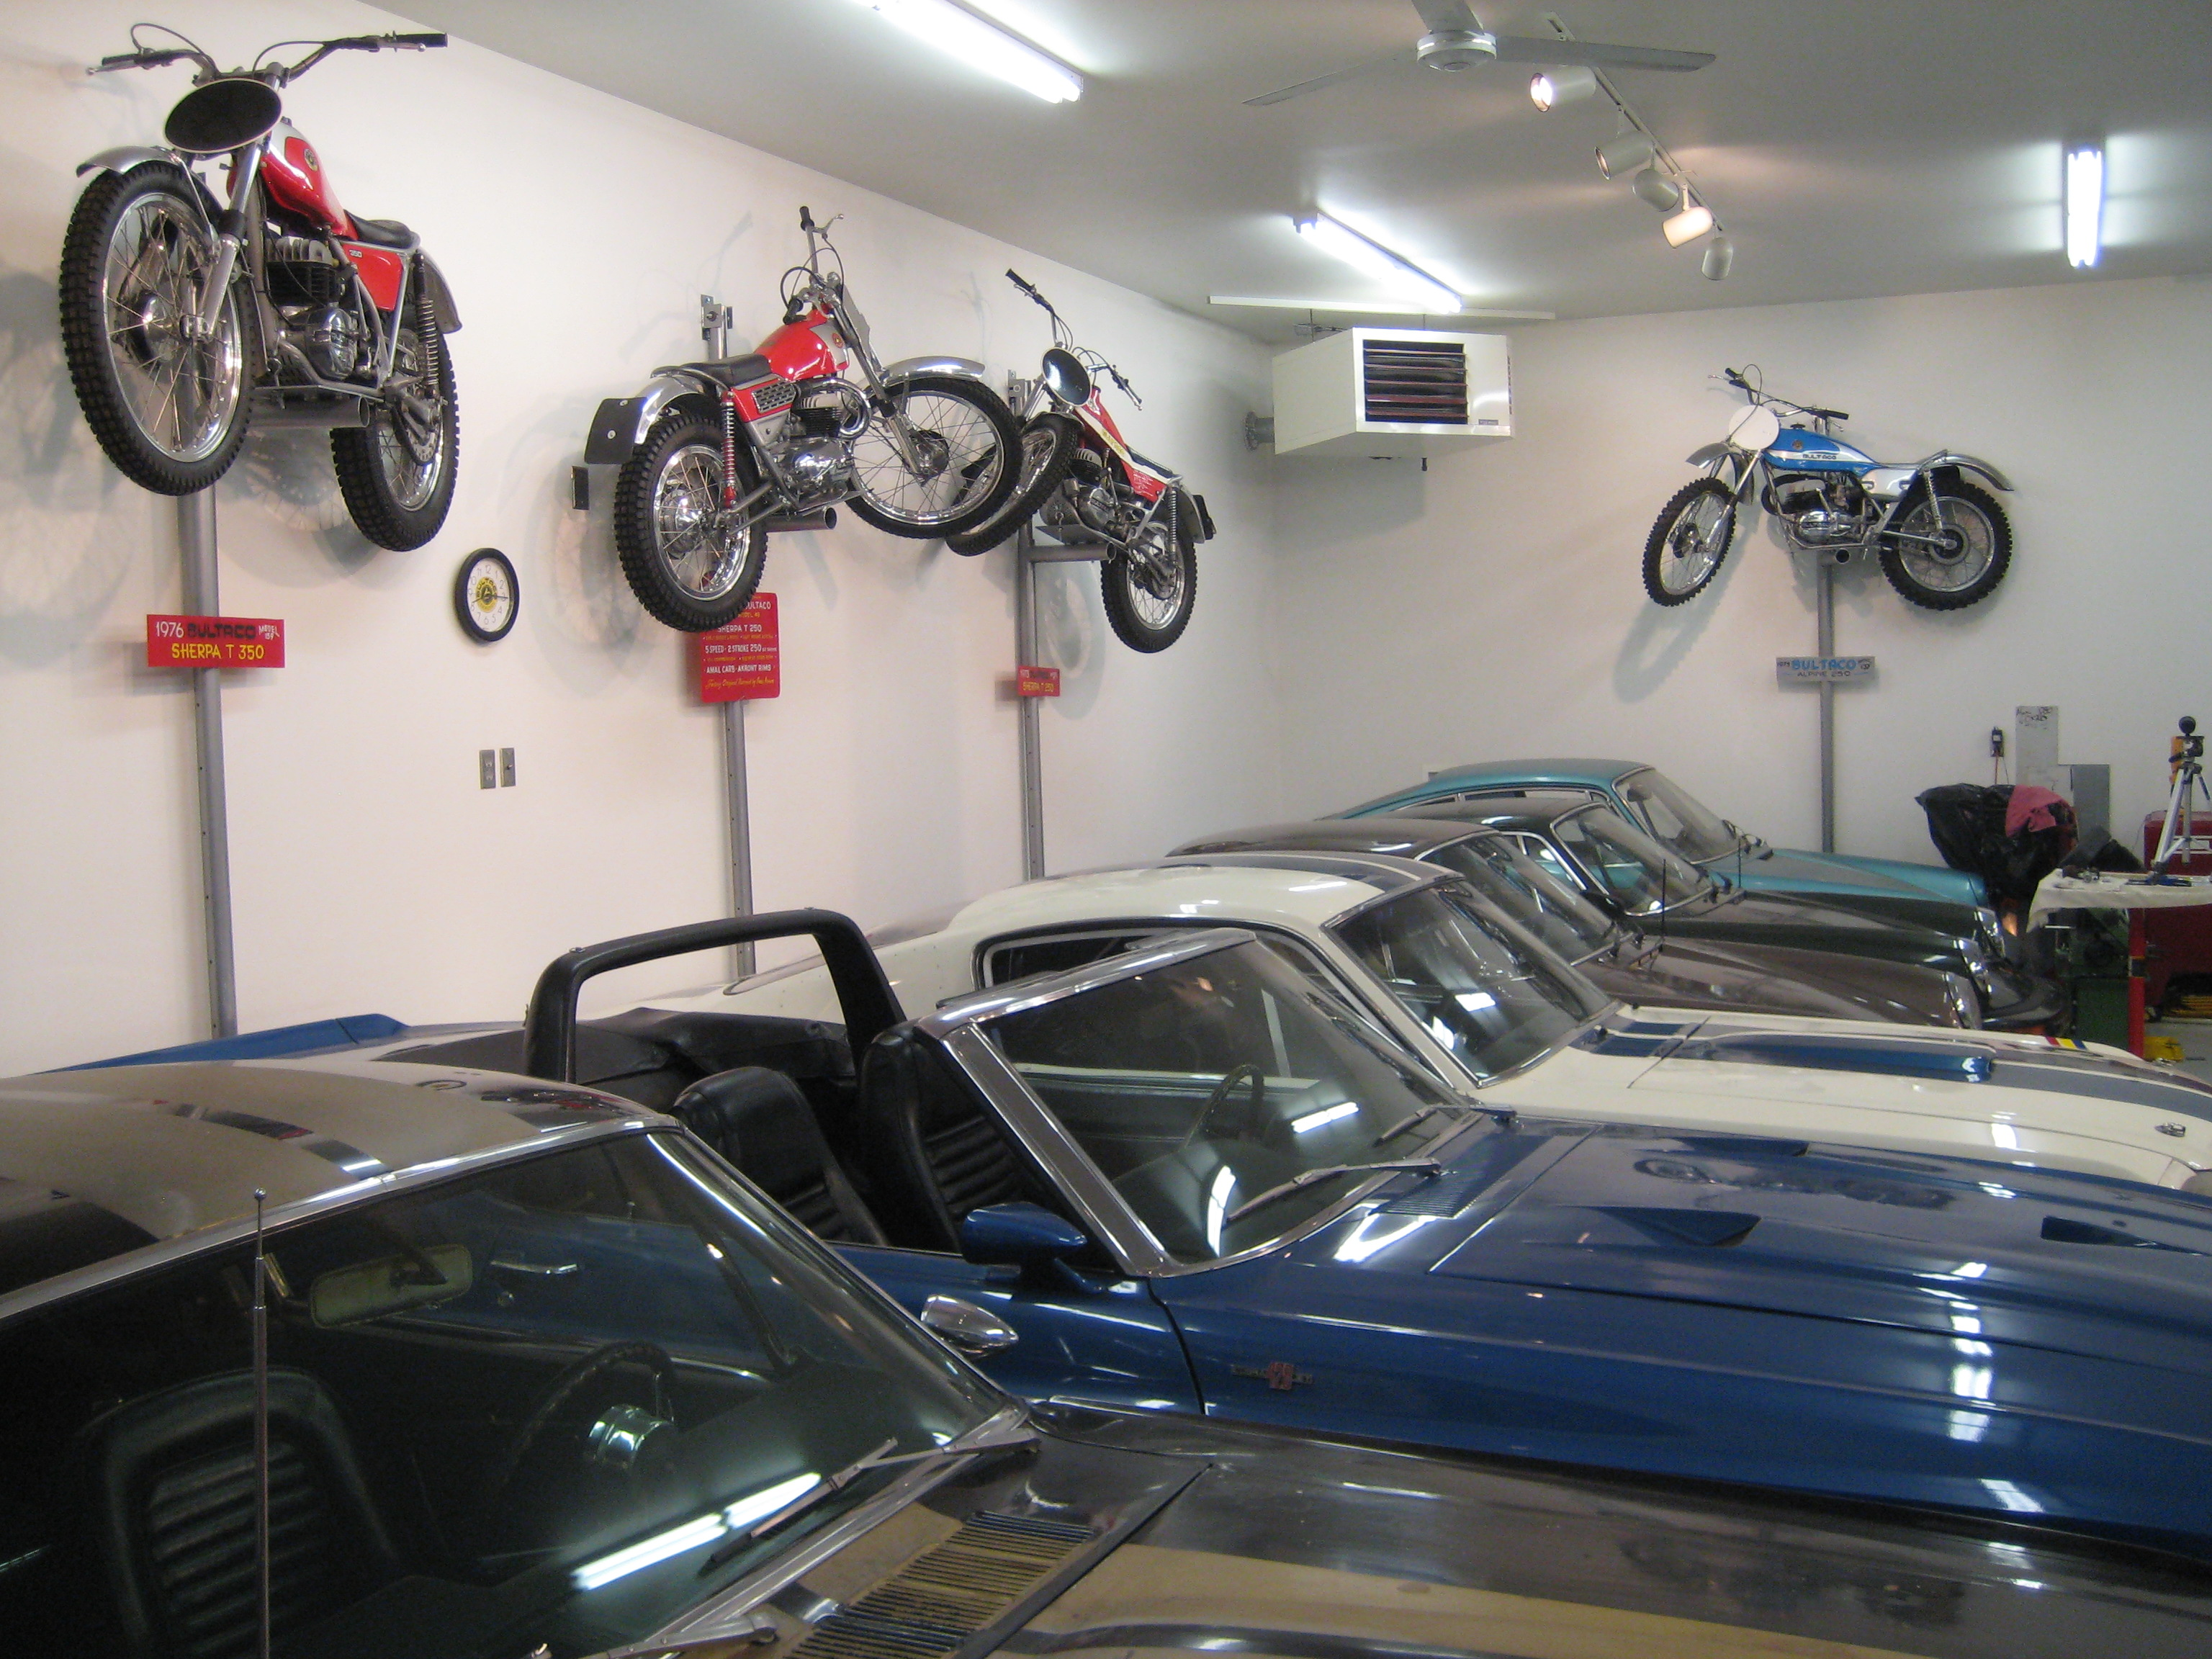 Shelby's Porsches and Bultaco's